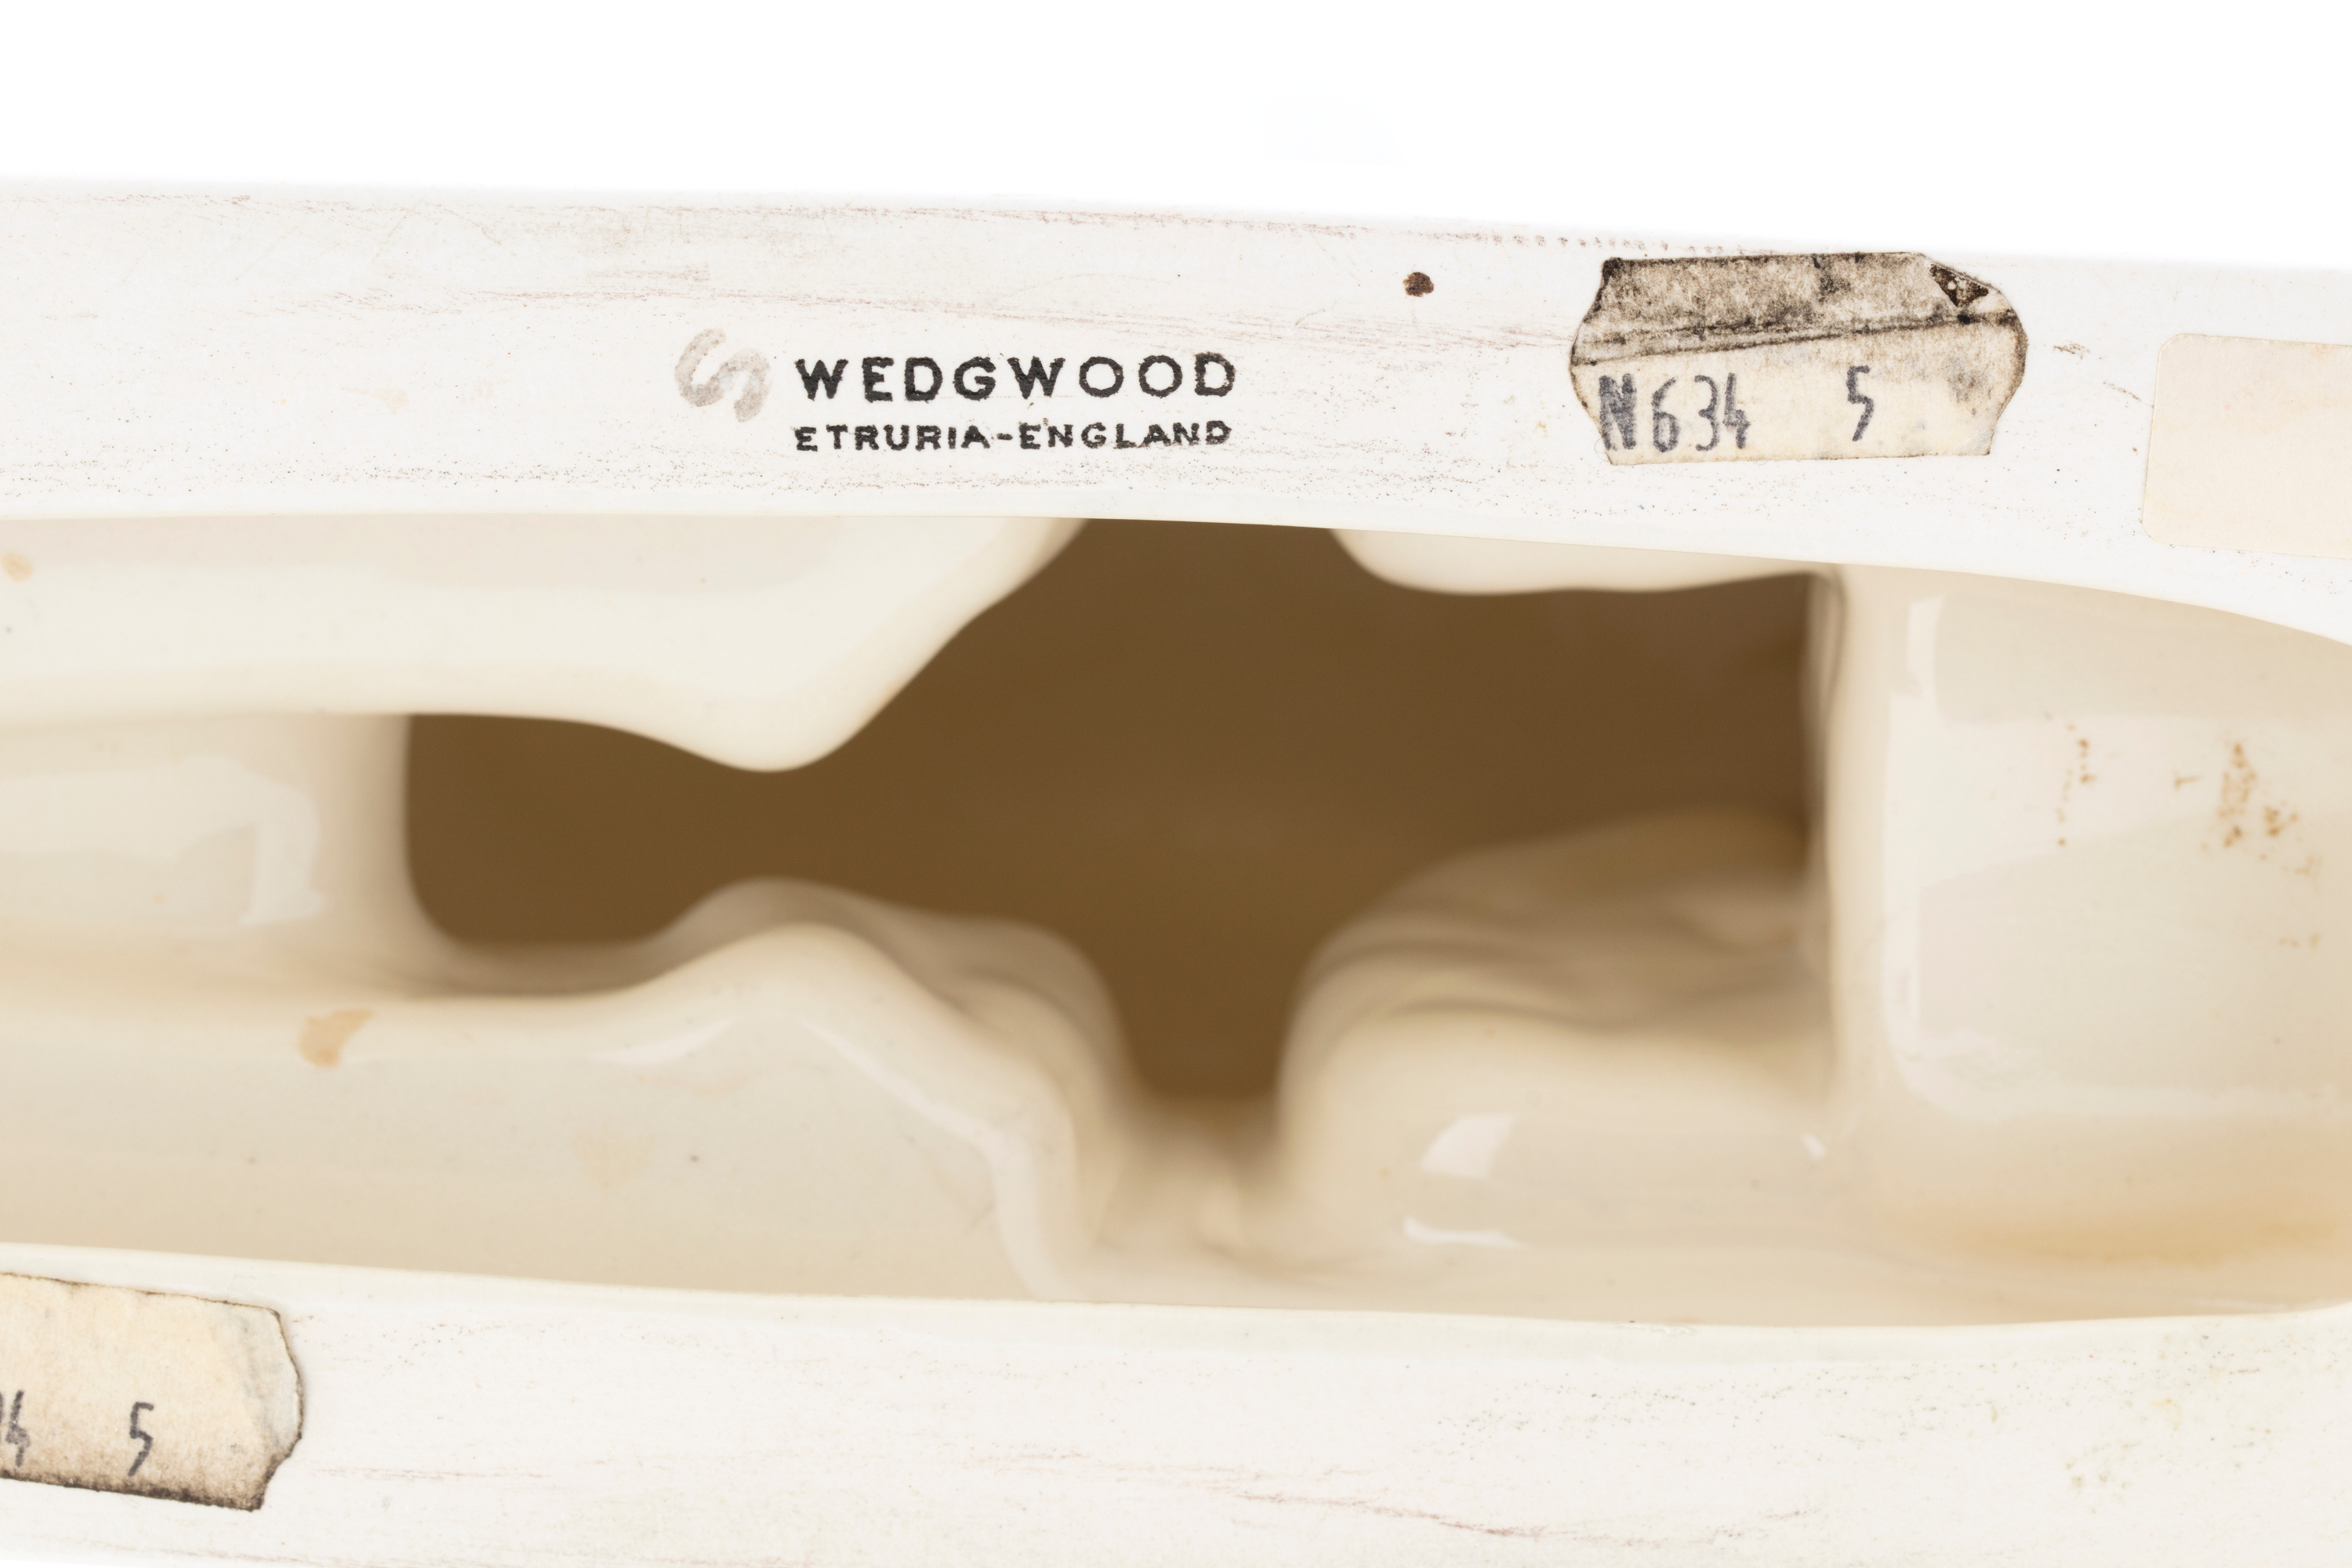 Underside of a white earthenware figure showing the printed black text 'WEDGWOOD / ETRURIA-ENGLAND'.